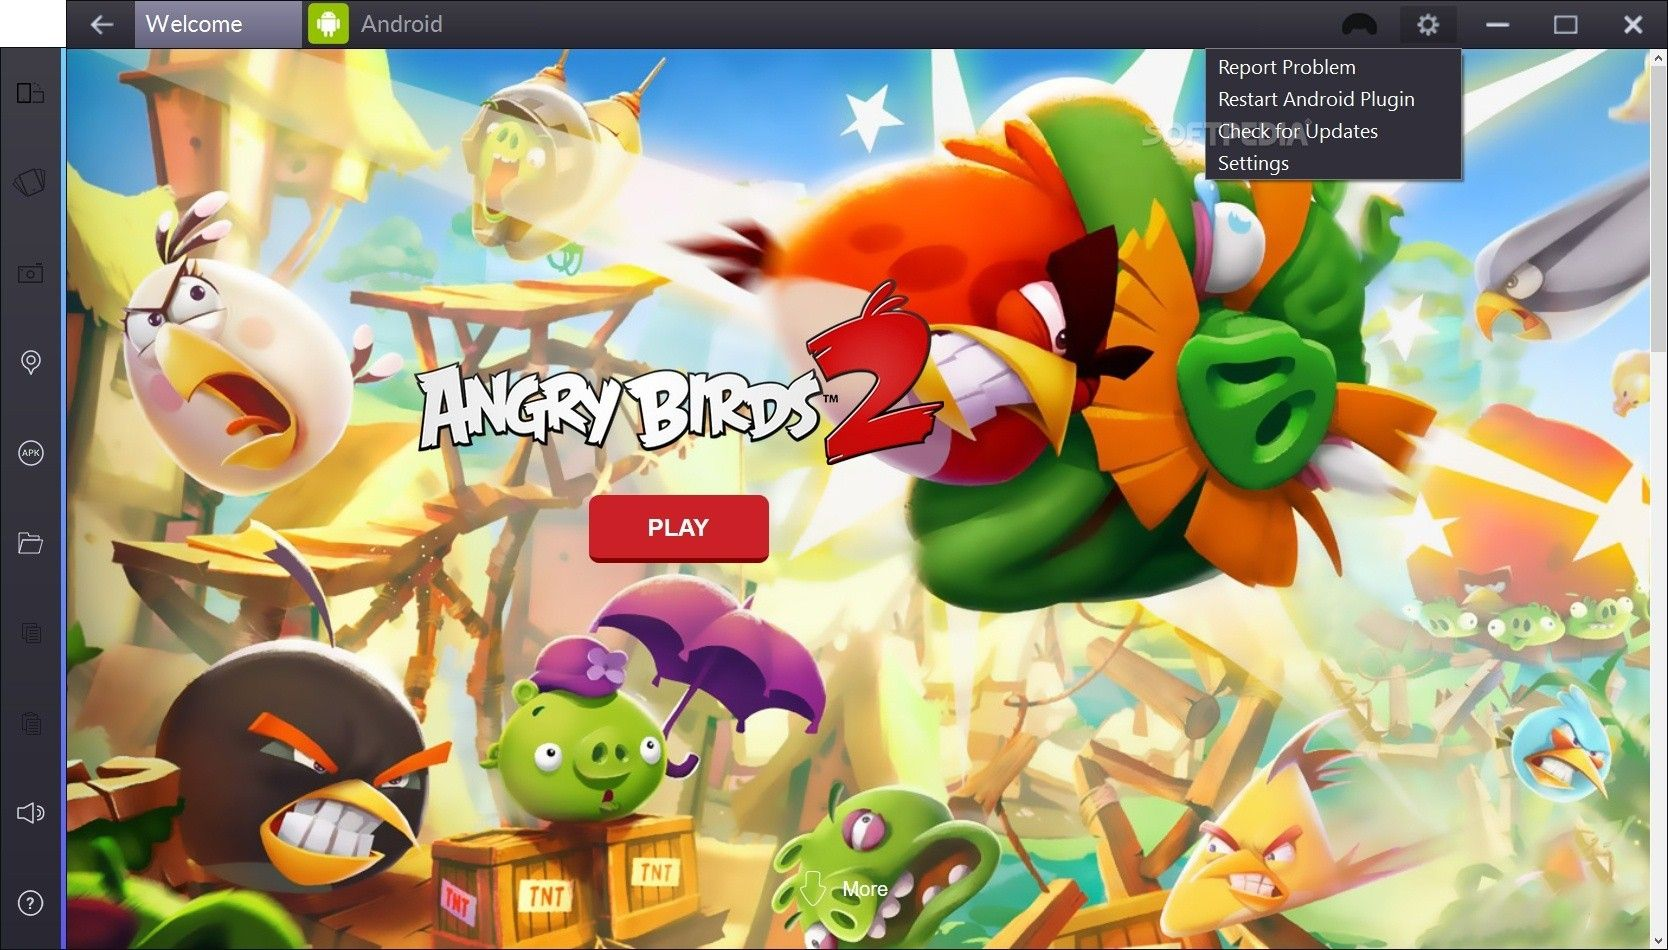 bluestacks-2-released-lets-you-run-android-apps-on-windows-10-with-multitasking-497139-3